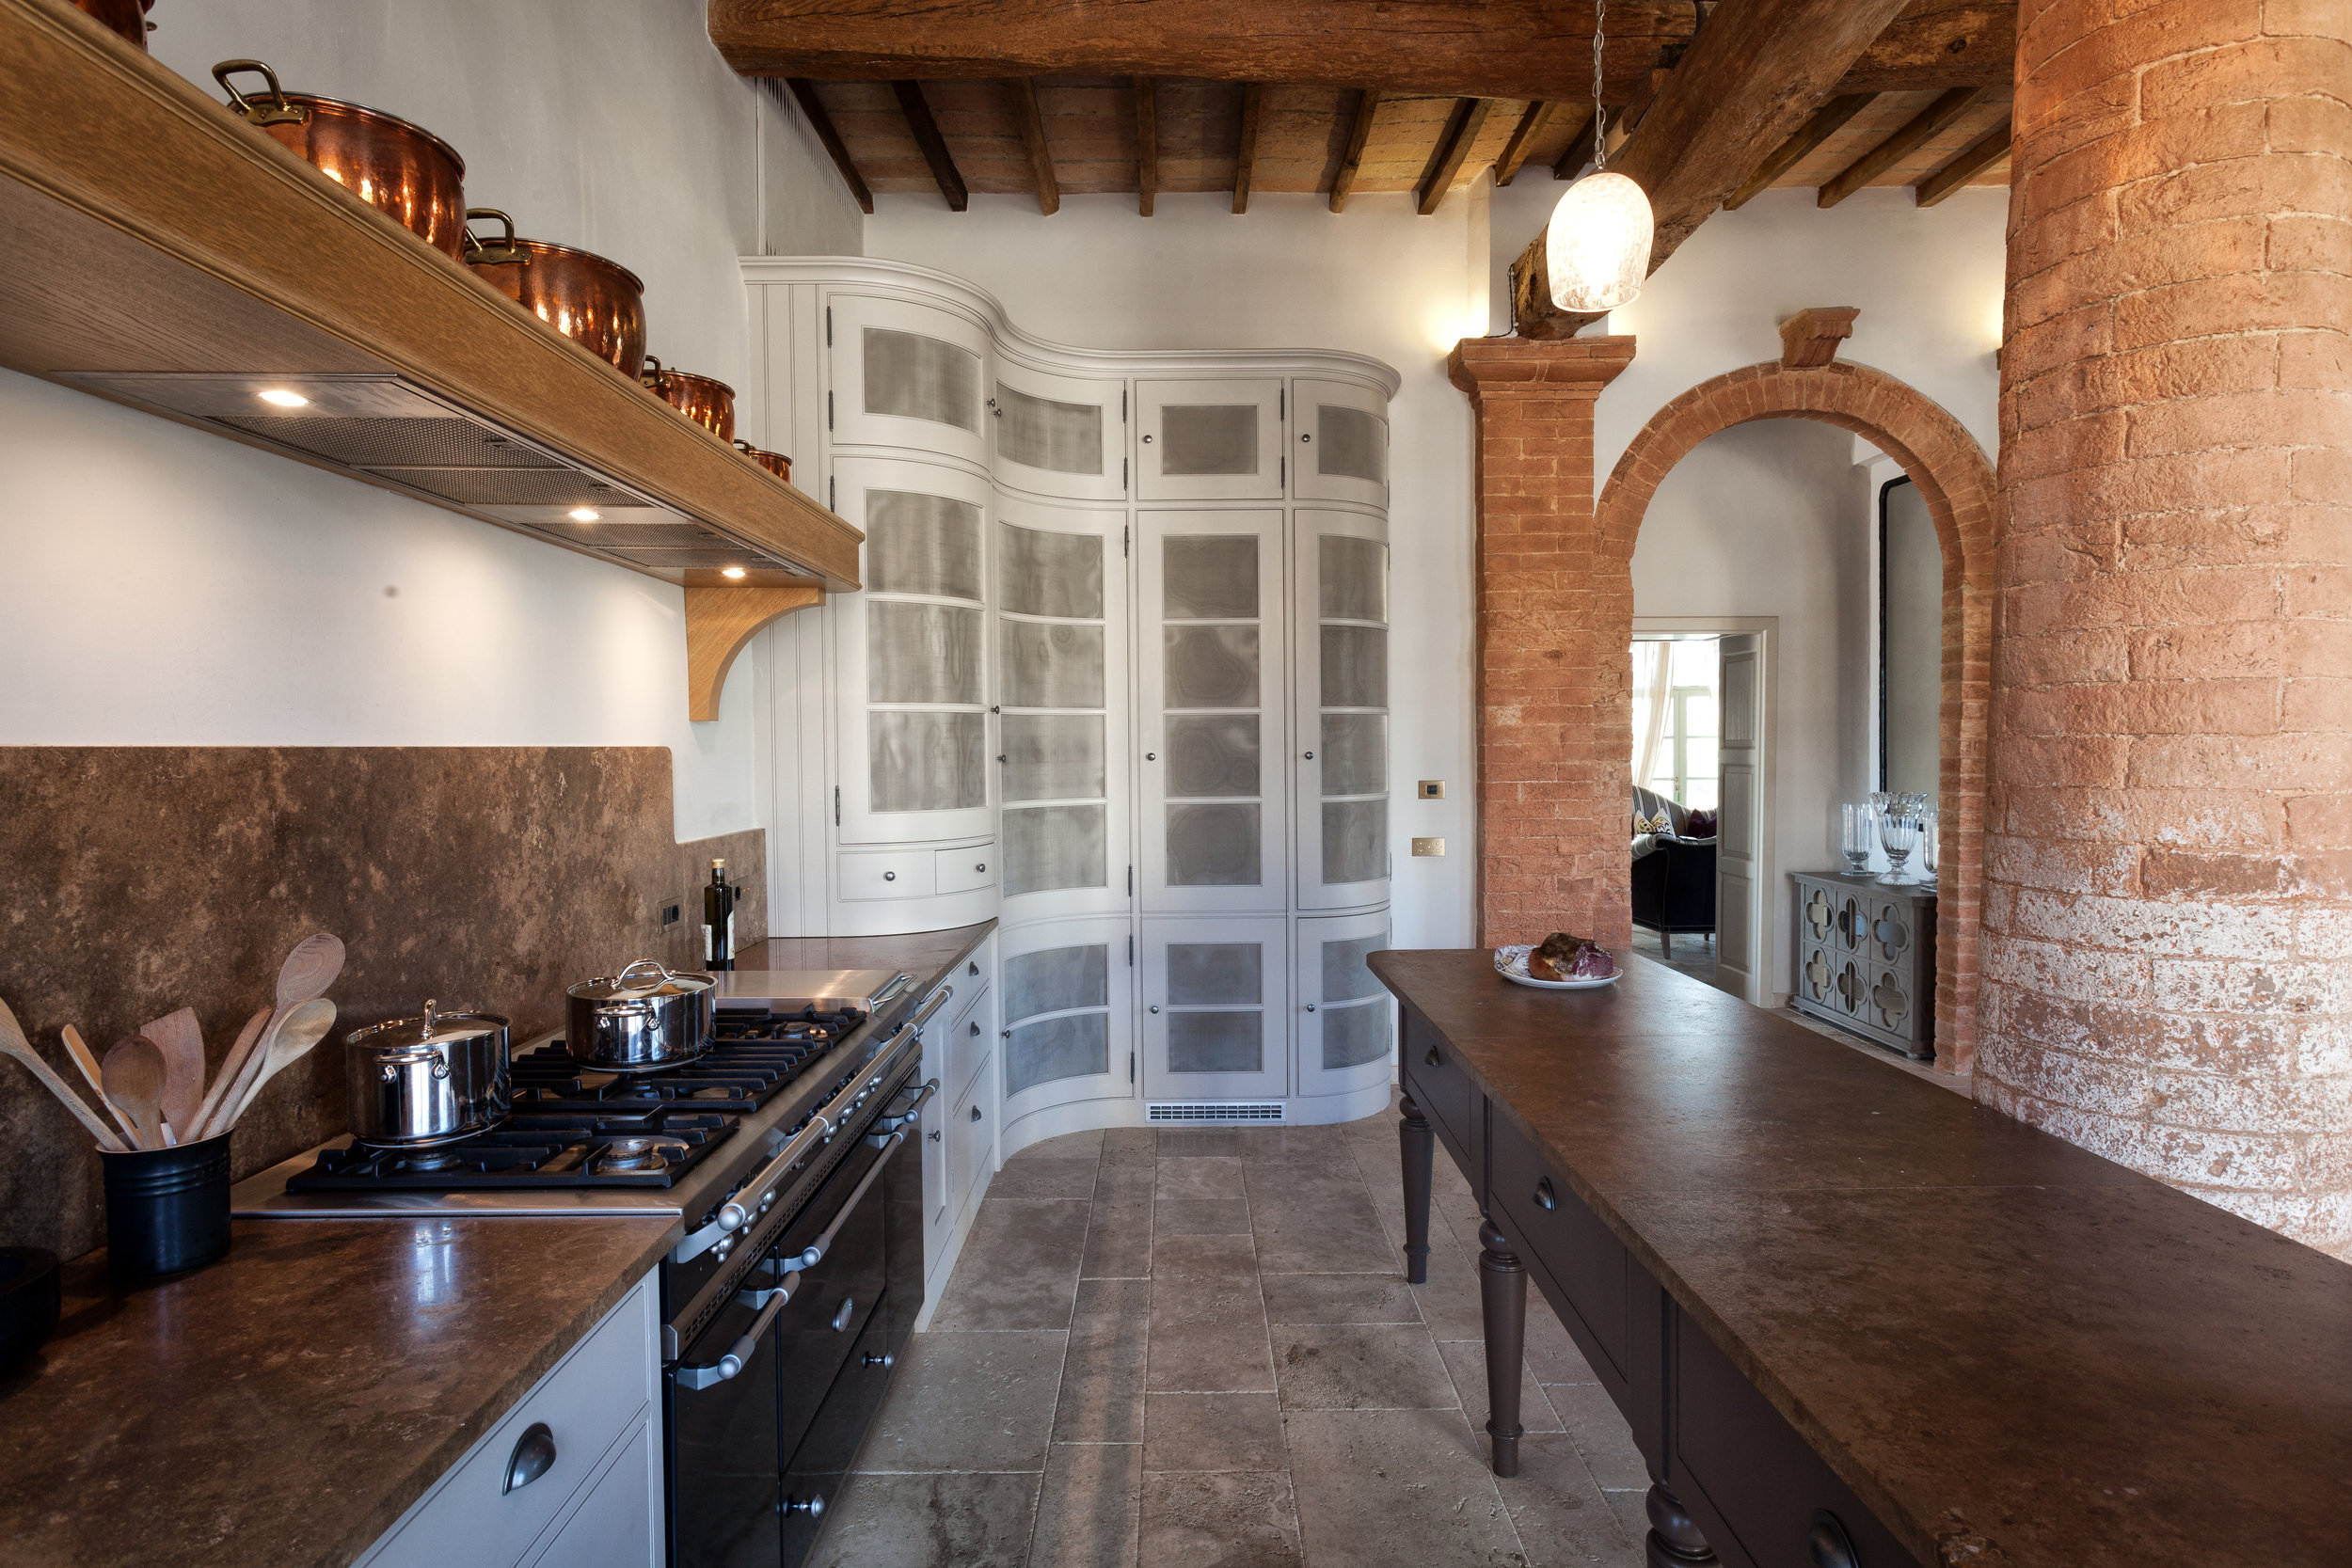 The elegant curved tall cupboards sit perfectly with the huge stone pillars in the kitchen